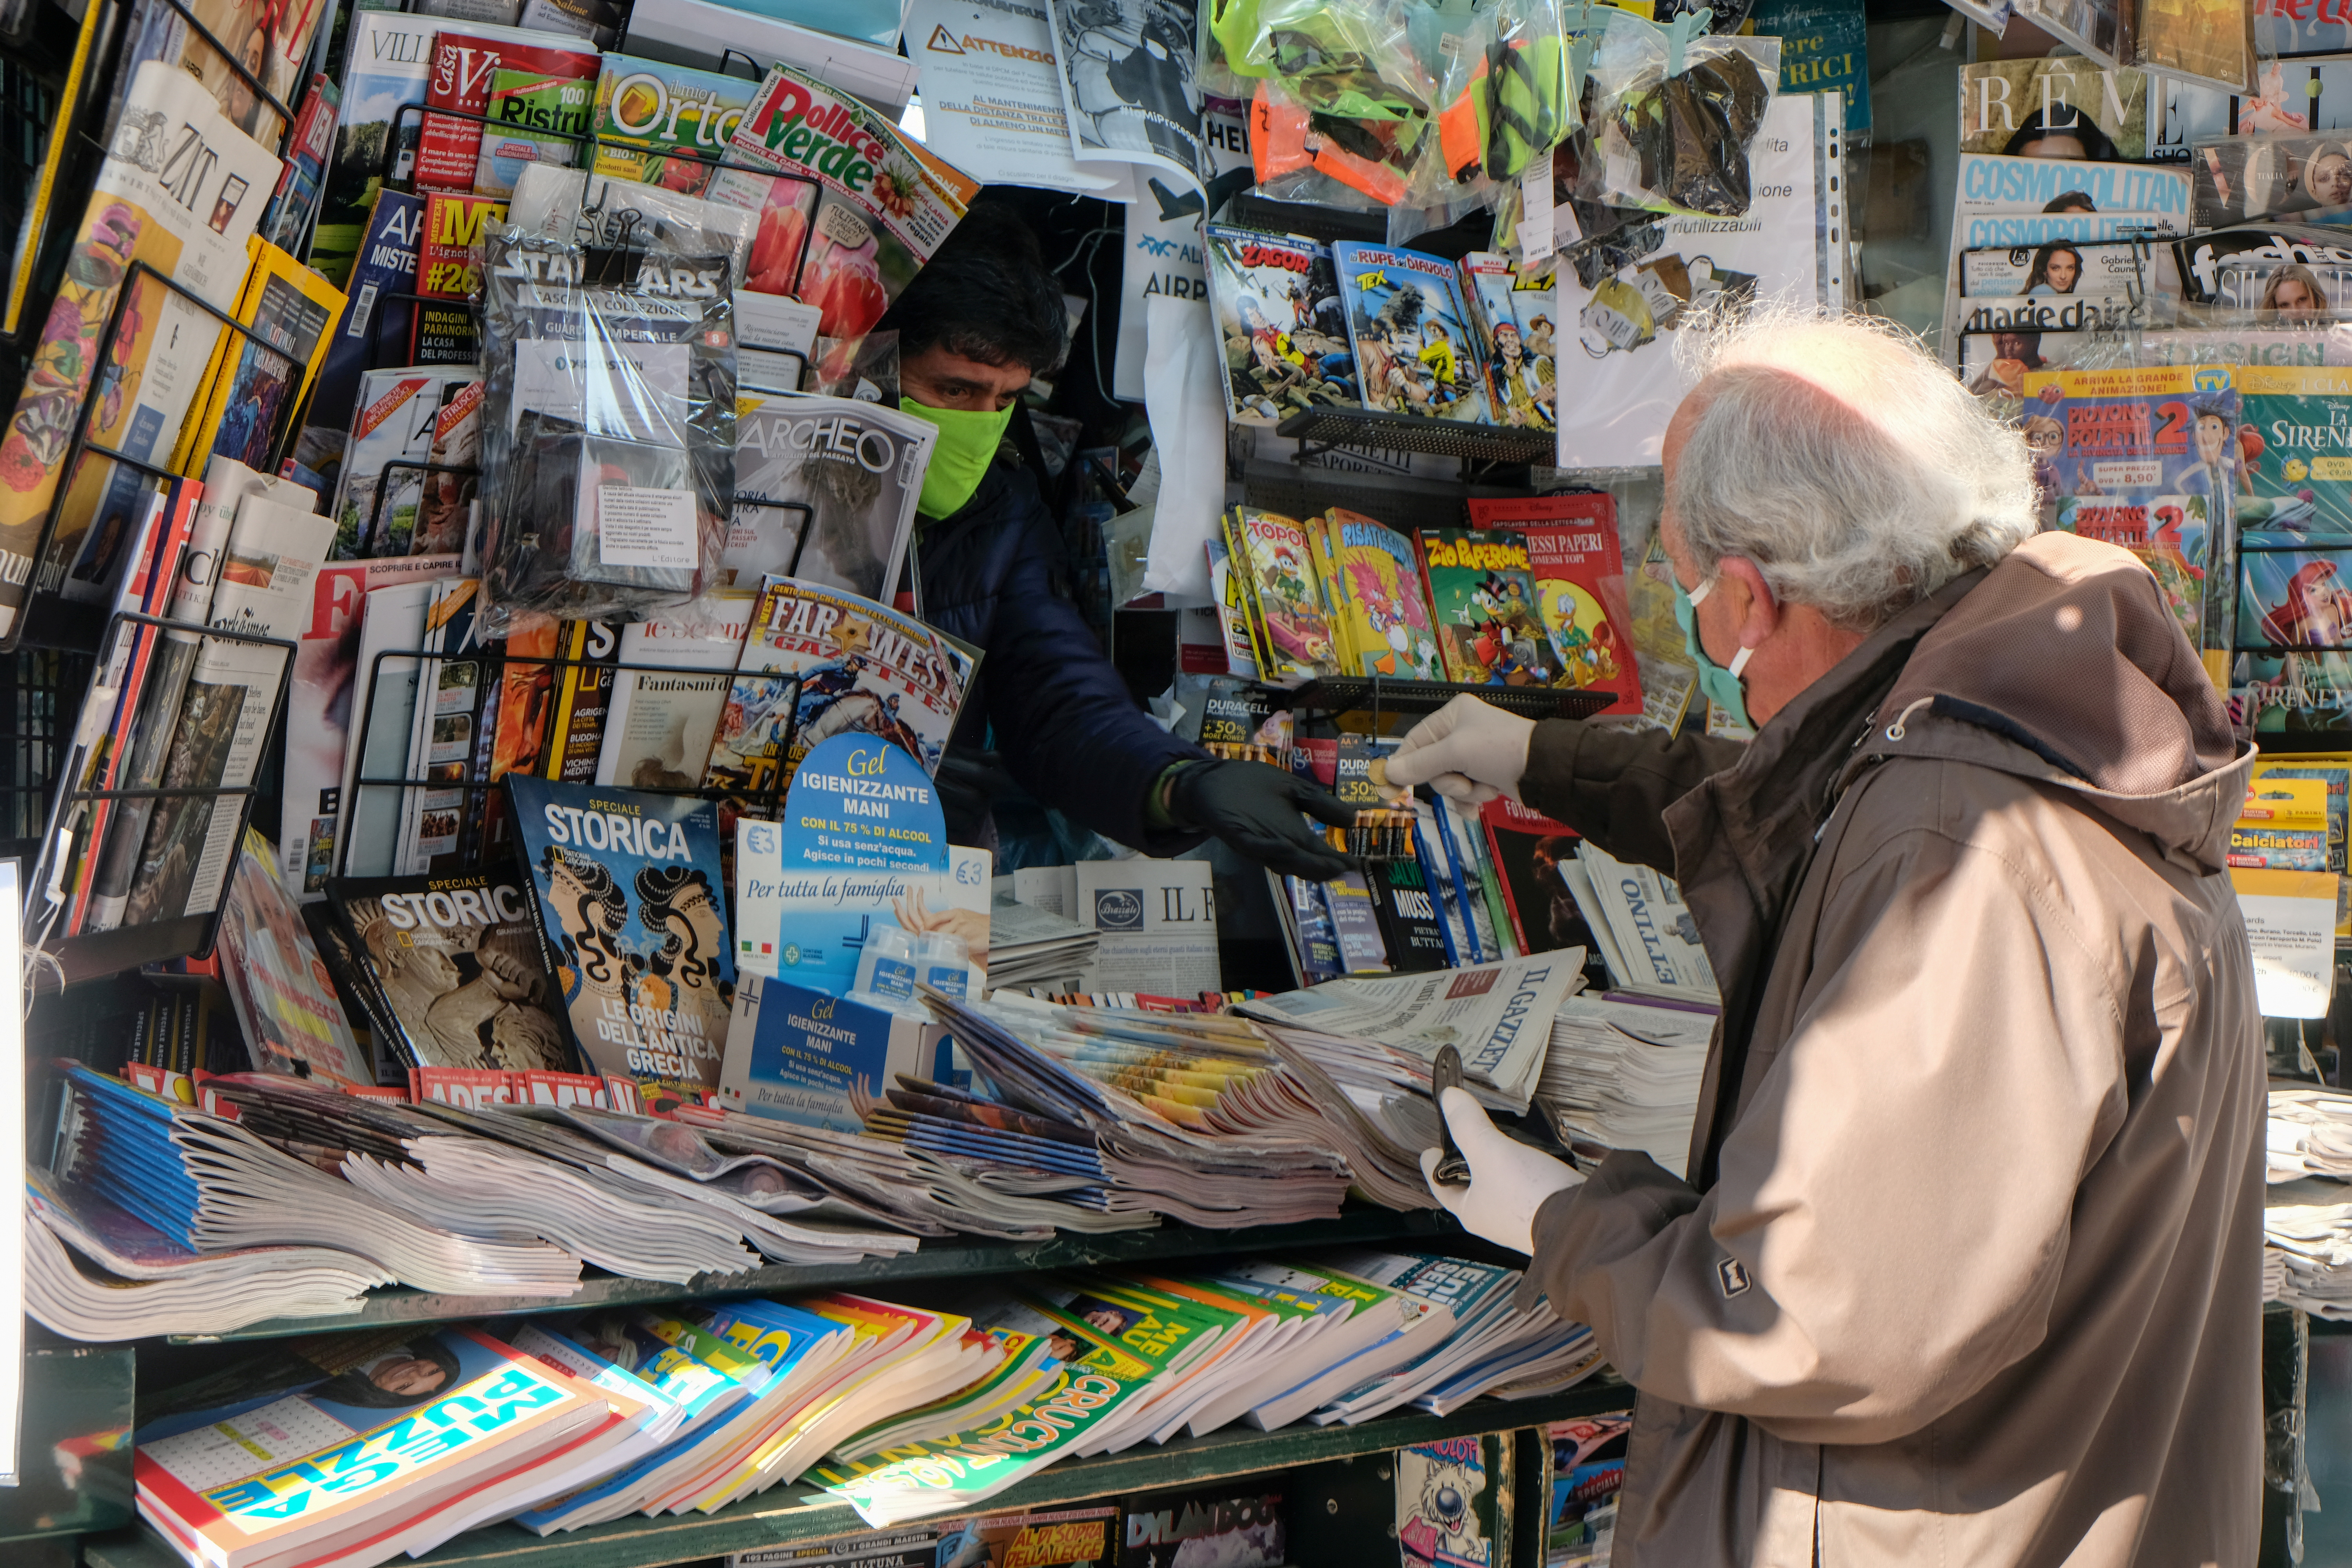 A man wears a protective face mask and gloves at the newsstand as the Italian government allows the reopening of some shops while a nationwide lockdown continues following the outbreak of the coronavirus disease (COVID-19), in Venice, Italy, April 14, 2020. REUTERS/Manuel Silvestri/File Photo